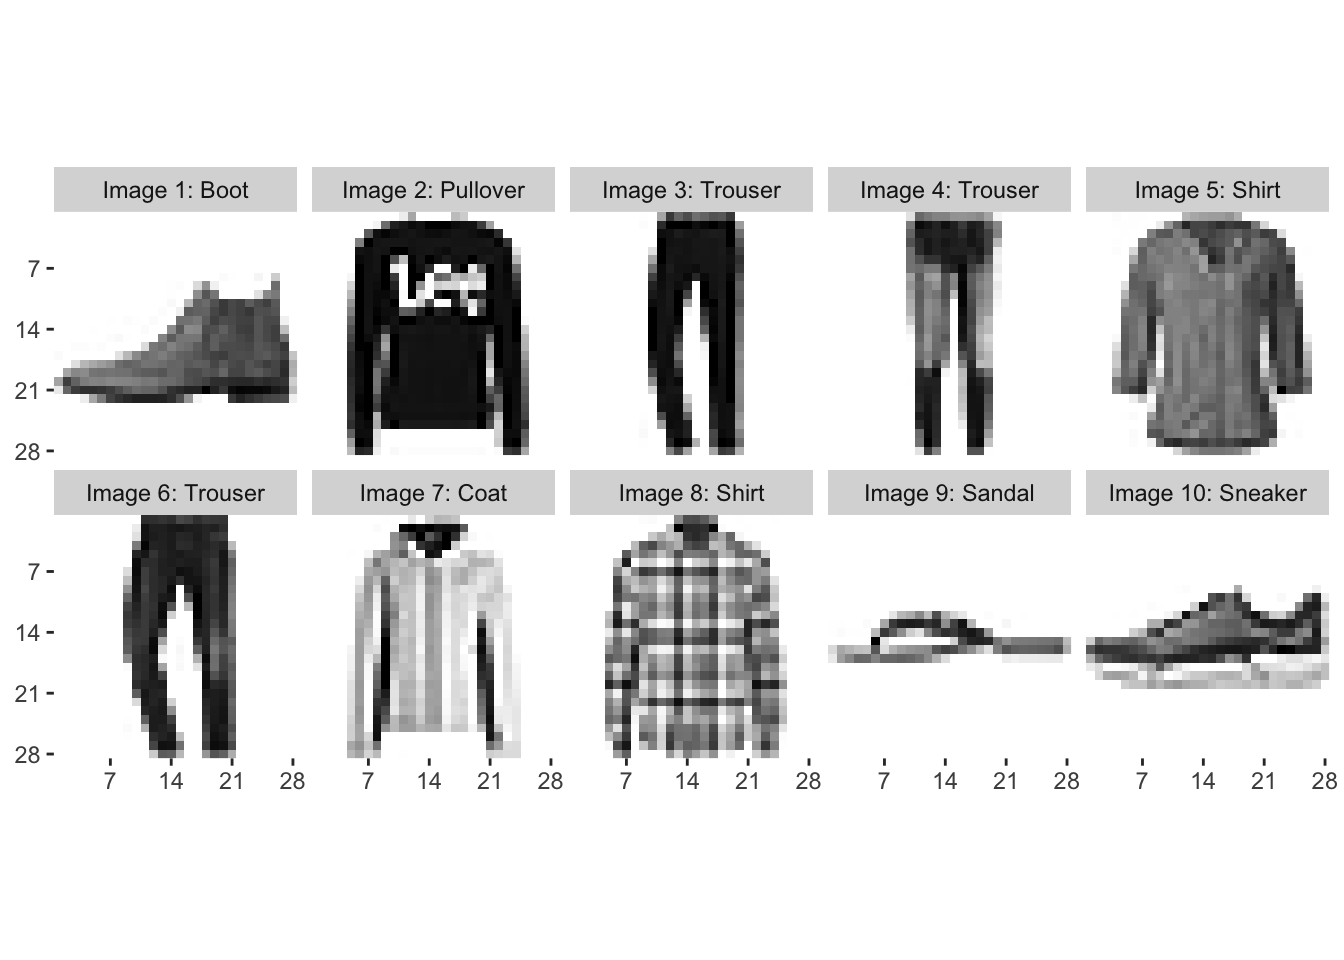 A comparison of methods for predicting clothing classes using the Fashion MNIST dataset in RStudio and Python (Part 1)